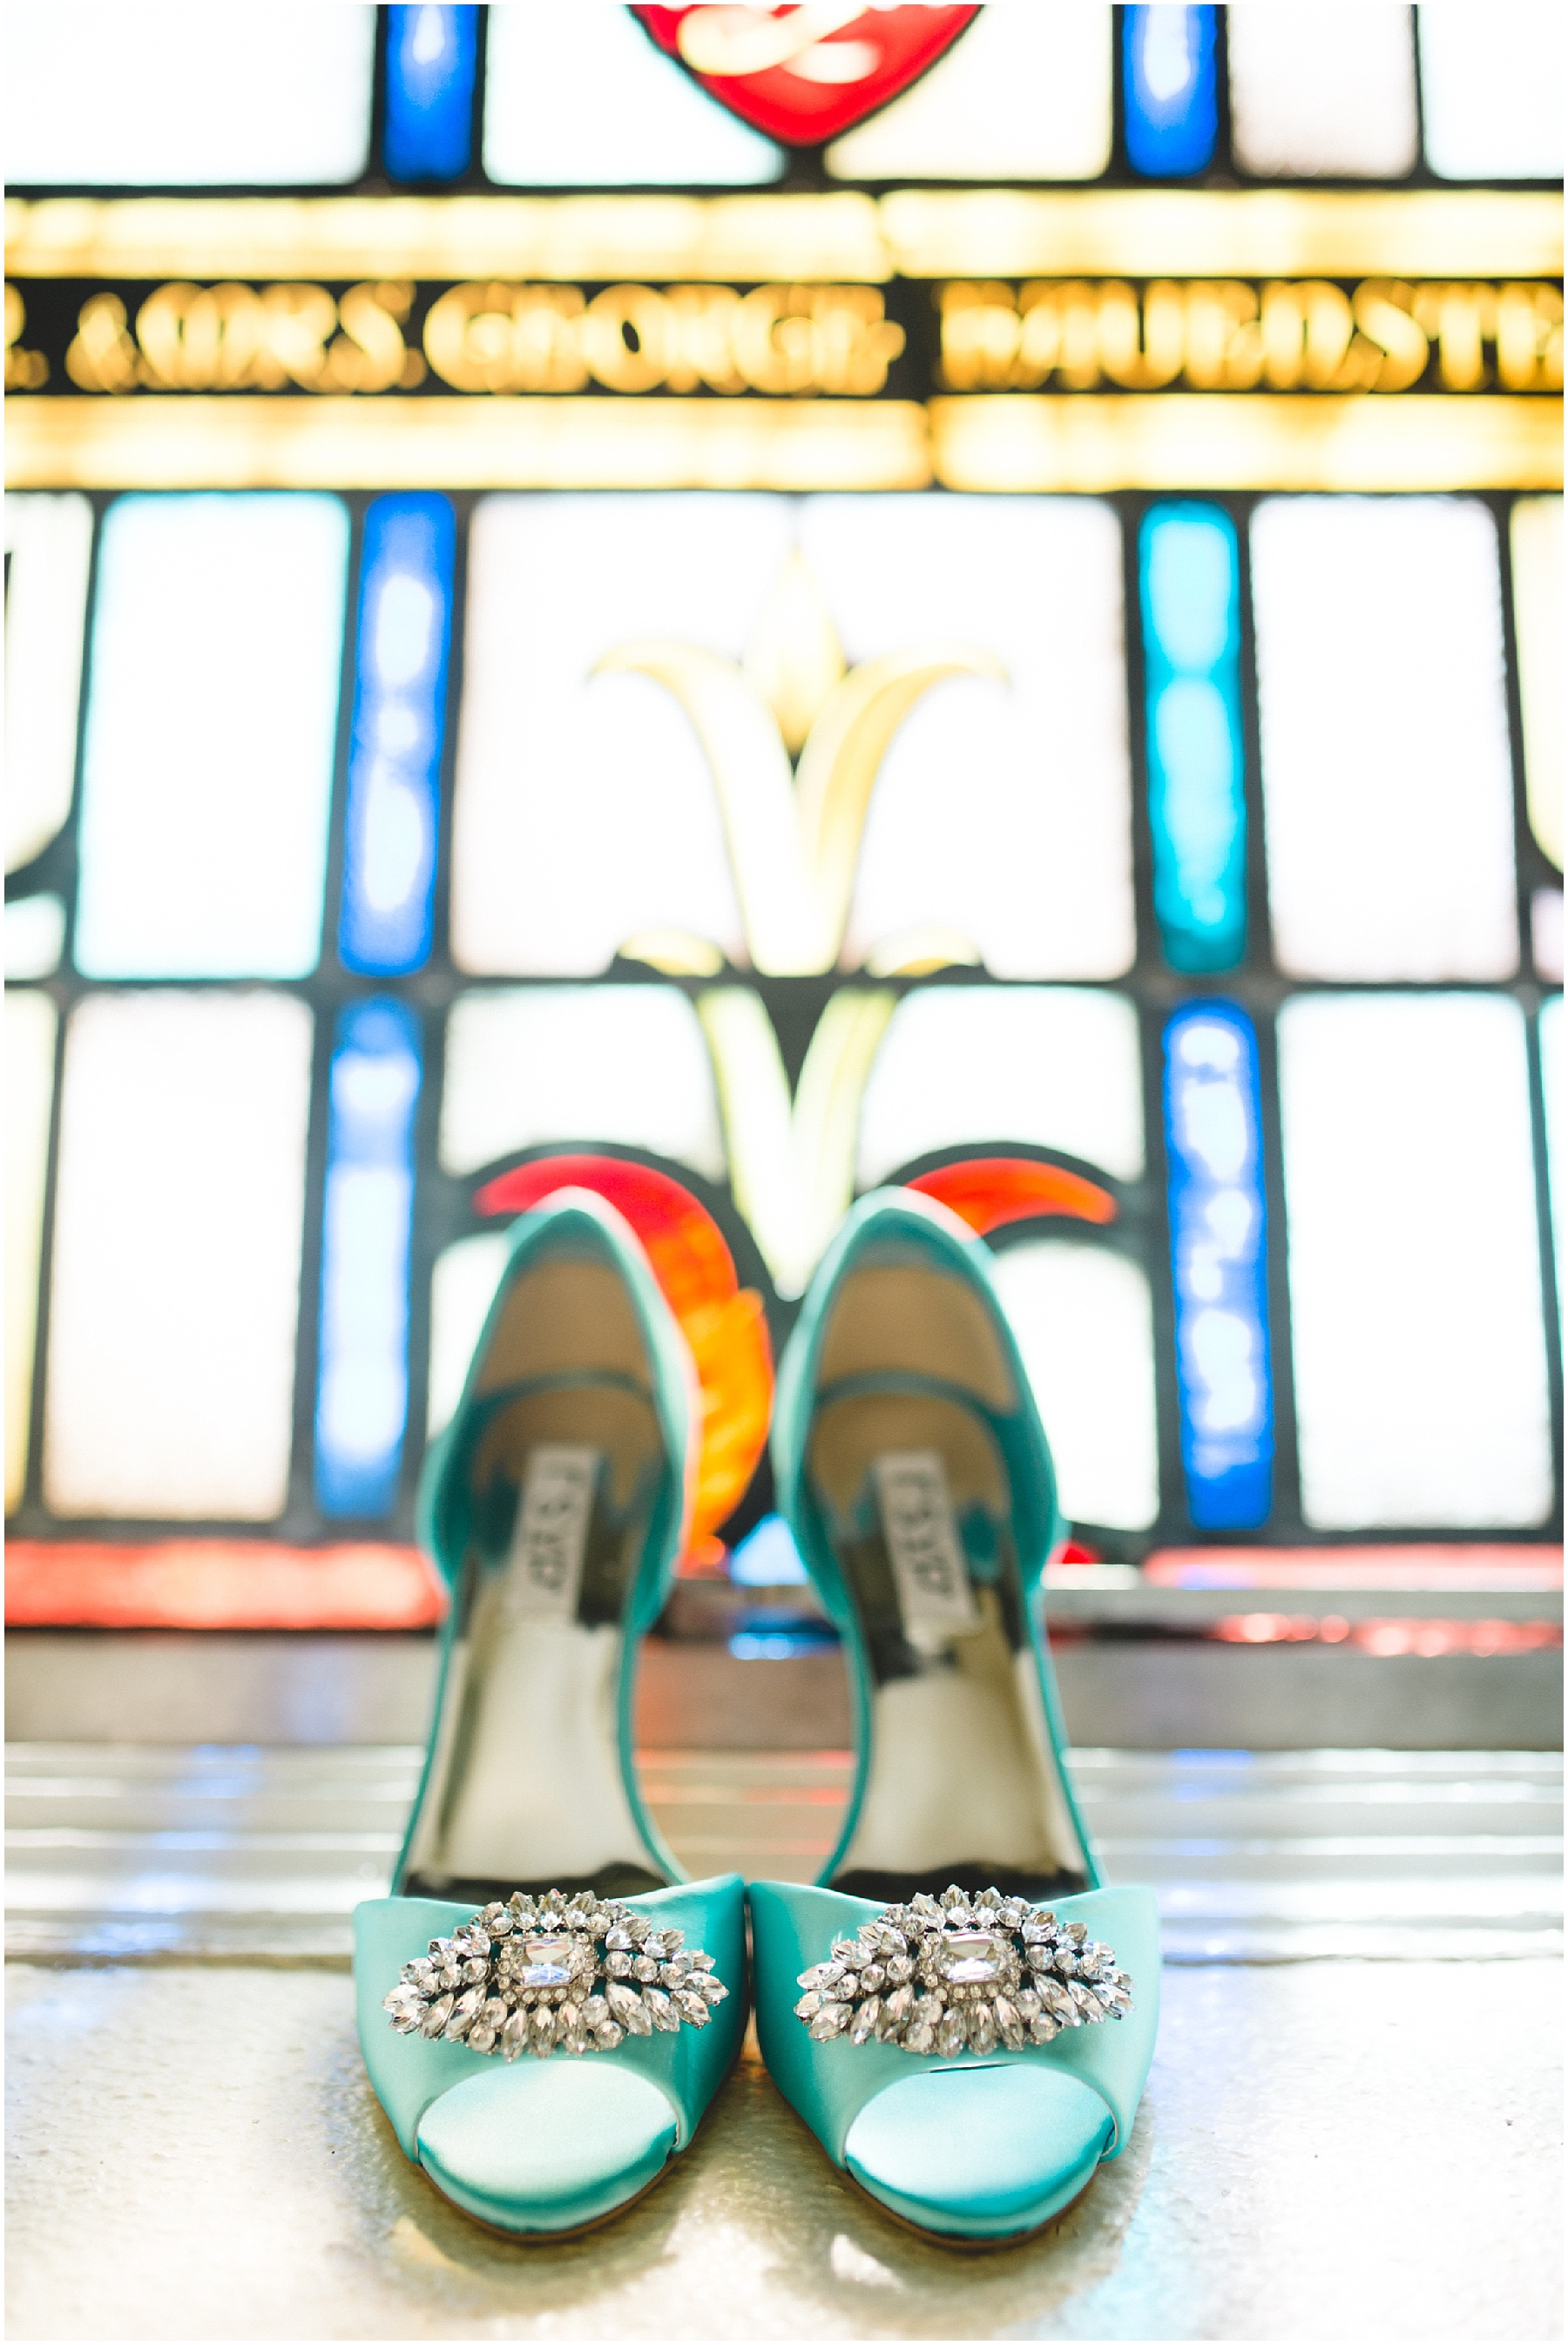 gorgeous catholic wedding, destination photographer, Destination Wedding Photographer., destination weddings, film inspired, first look, Gulf Coast Wedding Photographer, hattiesburg destination wedding photographer, Hattiesburg Engagement, hattiesburg film photographer, hattiesburg film photography, Hattiesburg MS Engagement, Hattiesburg MS photographer, Hattiesburg photographer, Hattiesburg Photographers, hattiesburg wedding photographer, hattiesburg wedding photography, Jackson Wedding Photographer, Louisiana Wedding Photographer, Megan Jolly Brides, Megan Jolly Engagements, Megan Jolly Photography, Mississippi Engagement, Mississippi Photographer, new orleans engagement photographer, New Orleans Photographer, New Orleans Wedding Photographer, petal wedding, Picayune wedding photographer, Romantic Engagement, romantic henry smith house wedding, South Alabama Wedding Photographer, South Louisiana Wedding Photographer, South Mississippi Engagements, south mississippi photographer, south Mississippi weddings, Southern Engagement, Southern Photographer, Southern Wedding Photographer, Texas Wedding Photographer, The venue at roseoak wedding, the venue downtown hattiesburg, wedding first loo